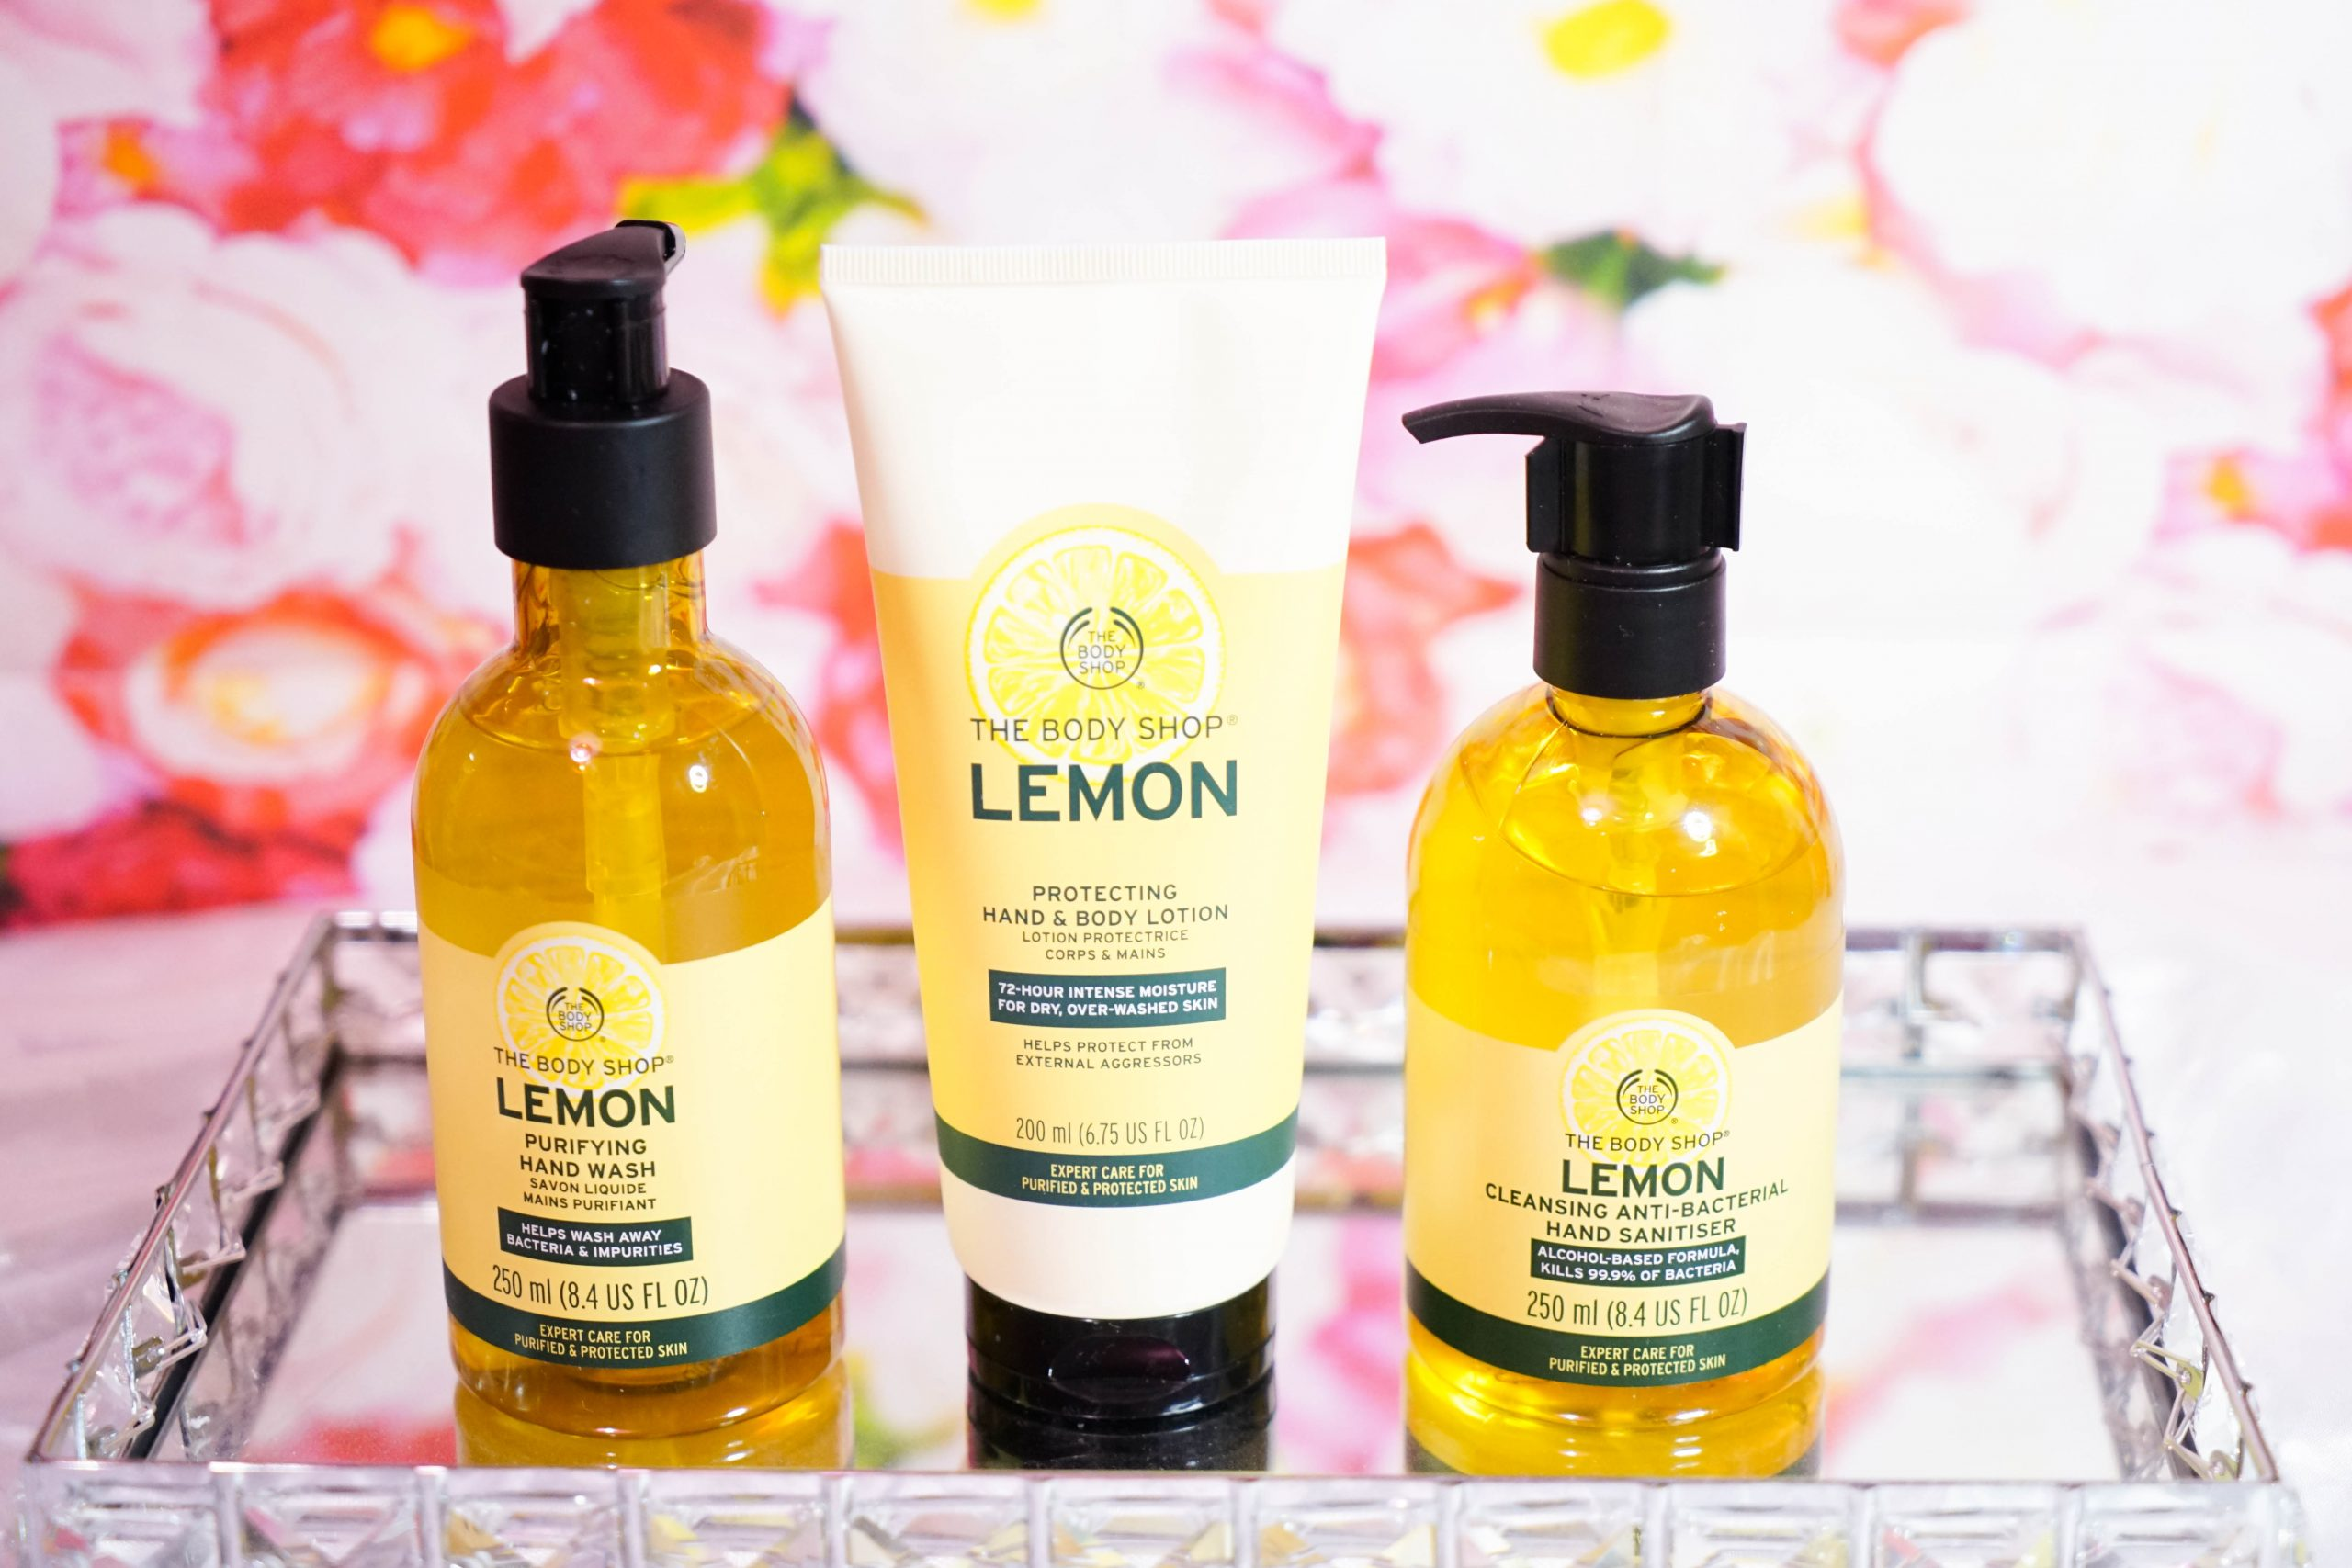 The Body Shop Lemon Range